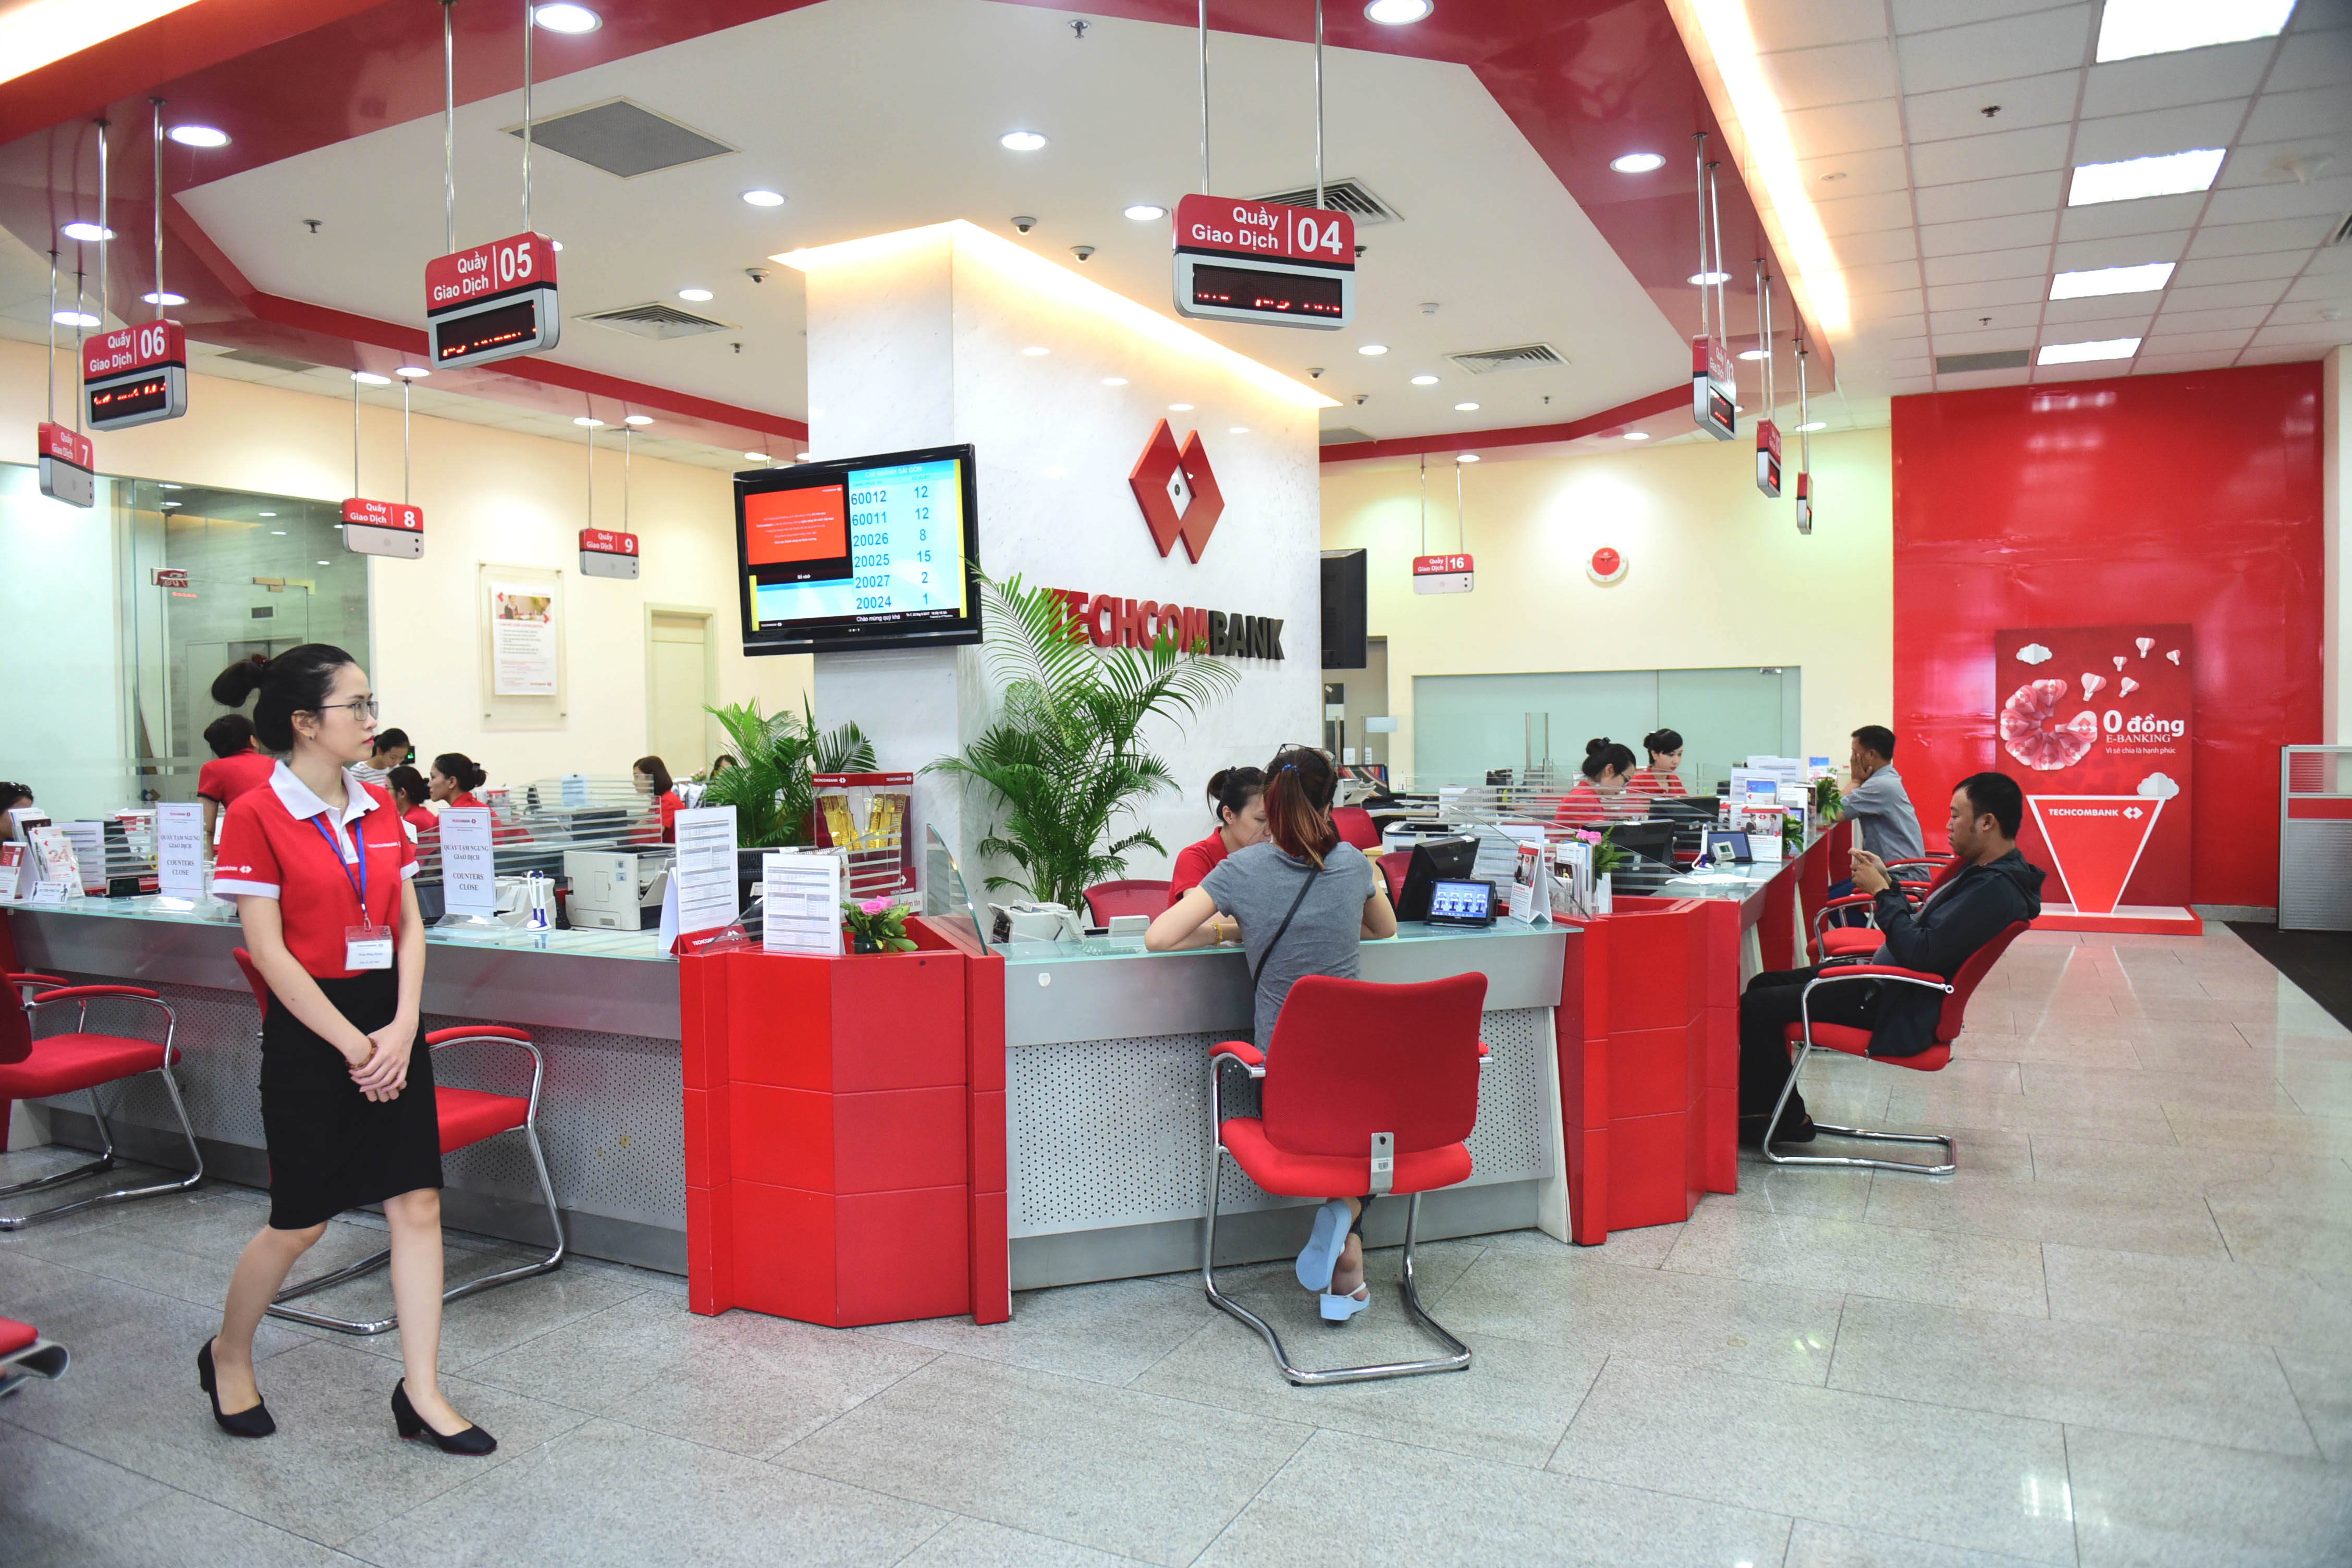 Vietnam's Techcombank raises $500mn in inaugural syndicated offshore loan facility